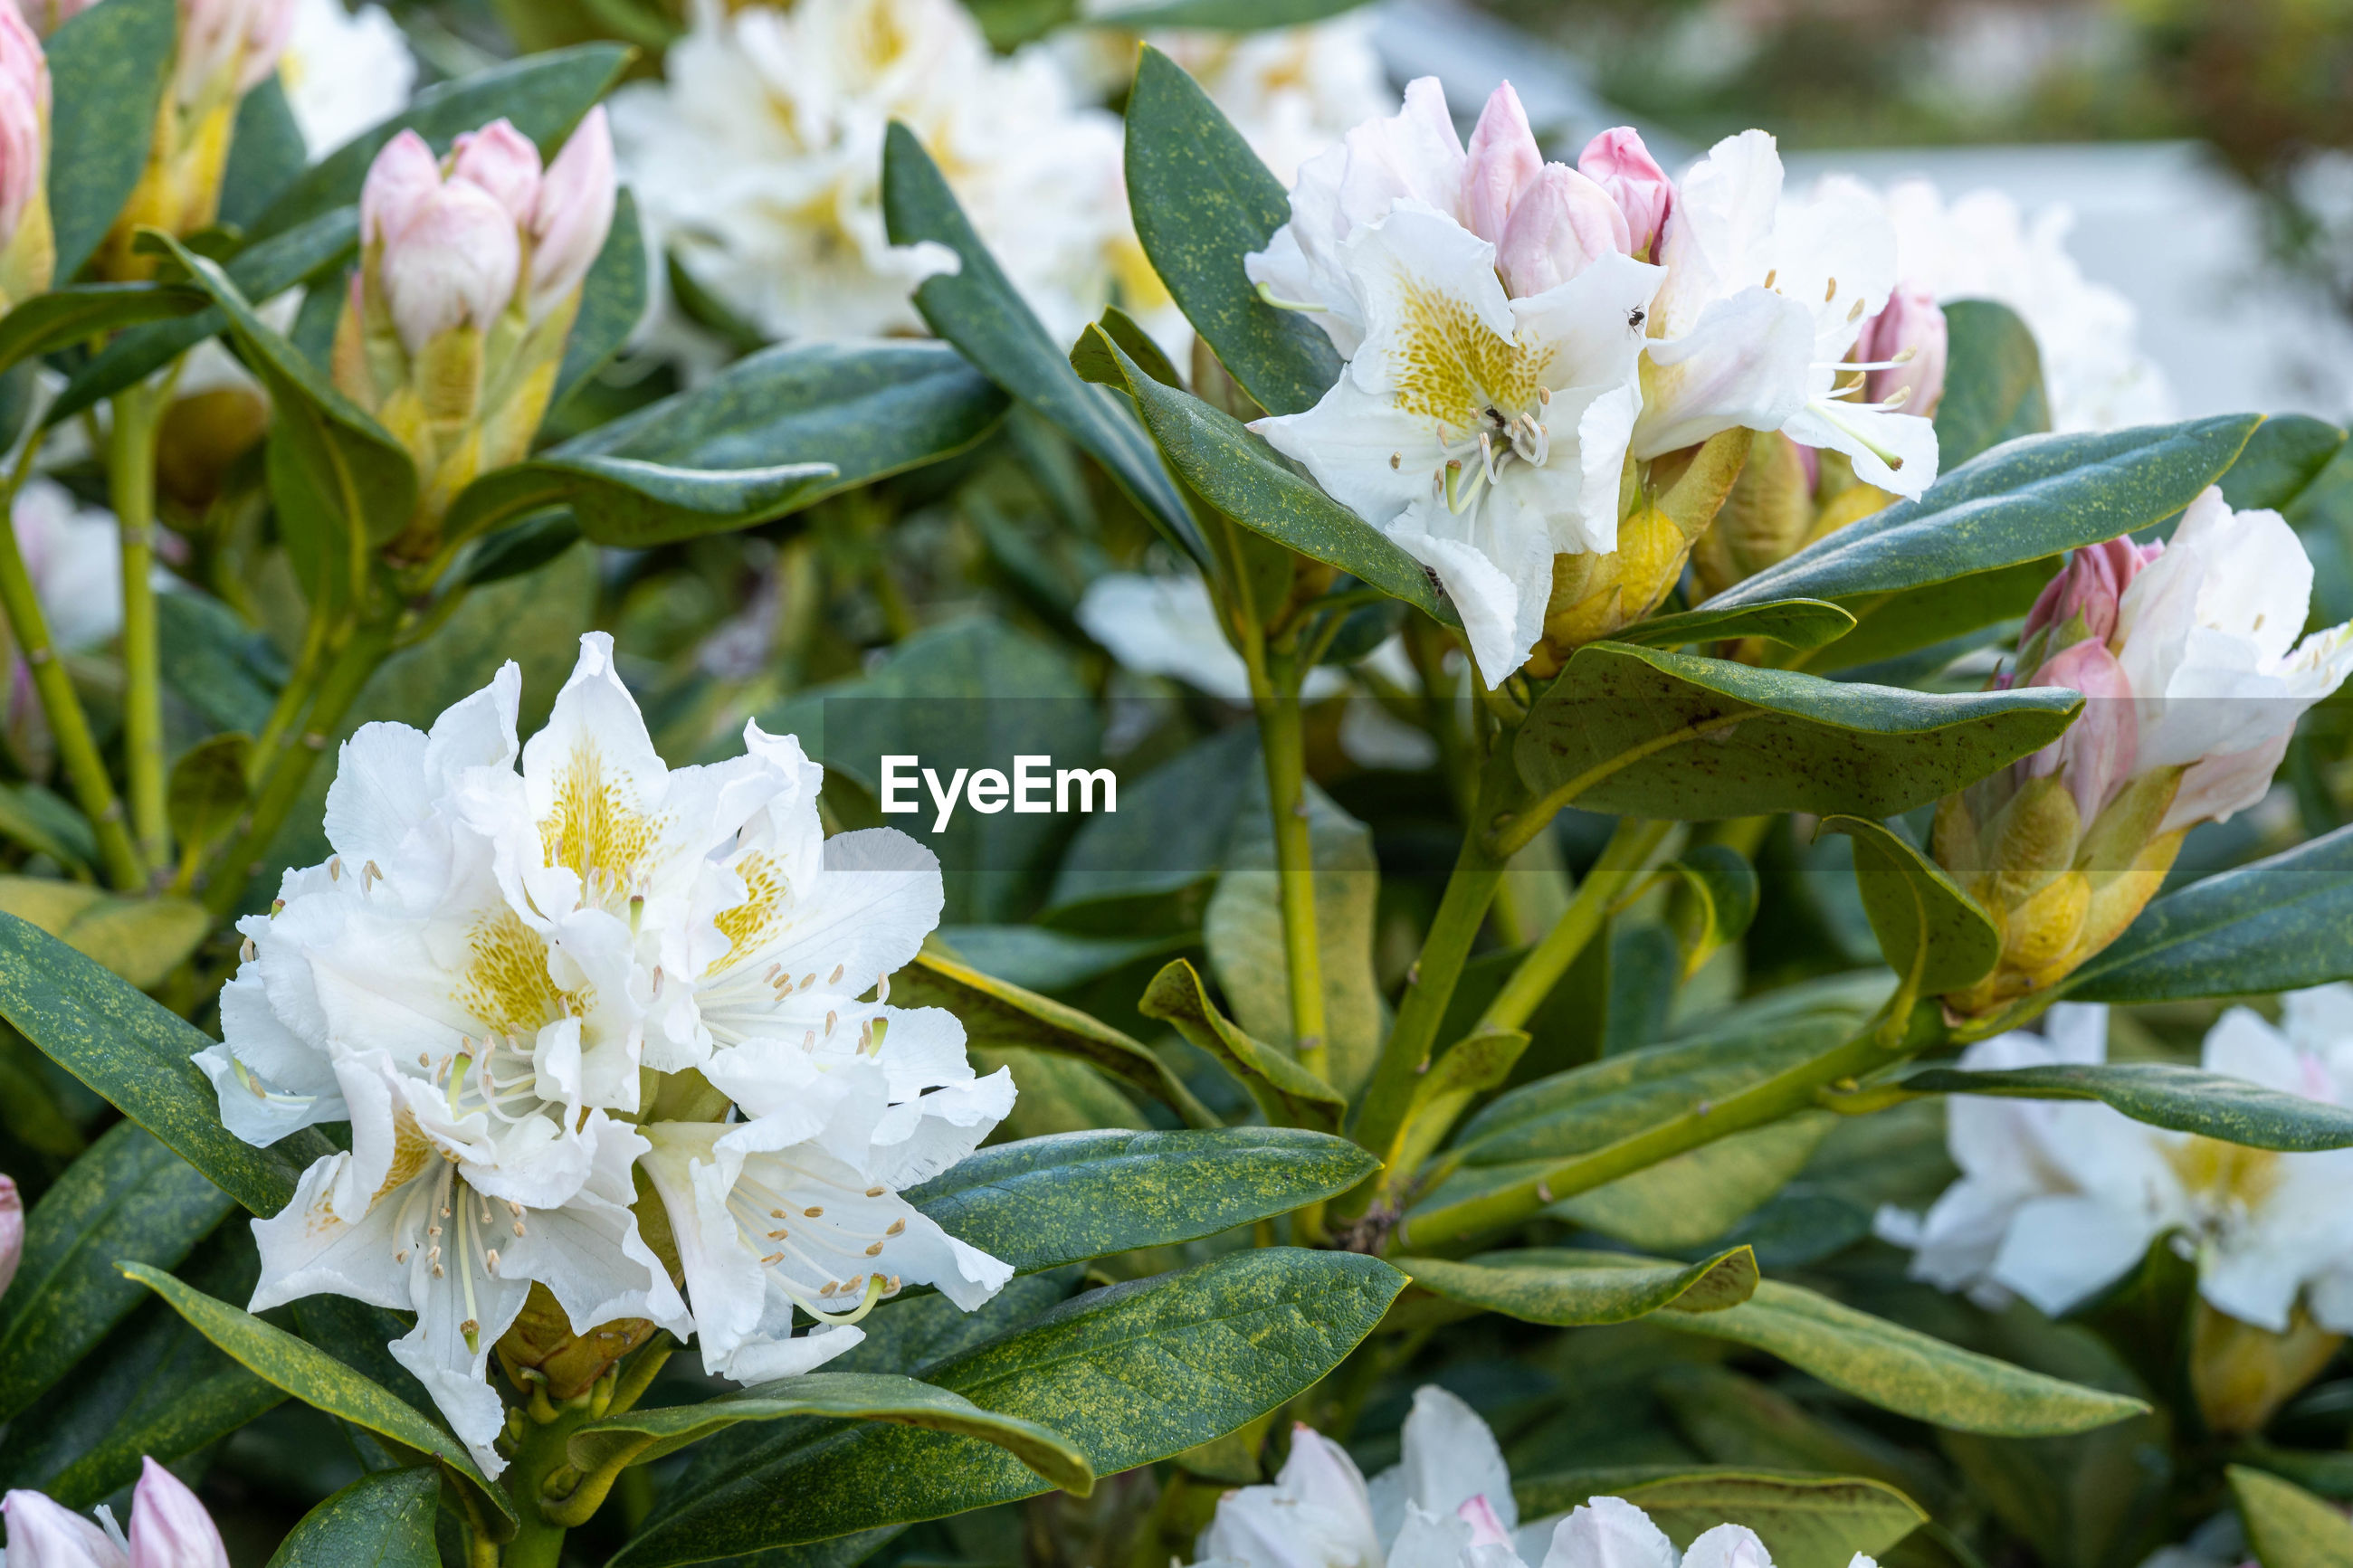 CLOSE-UP OF WHITE FLOWERING PLANT WITH FLOWERS